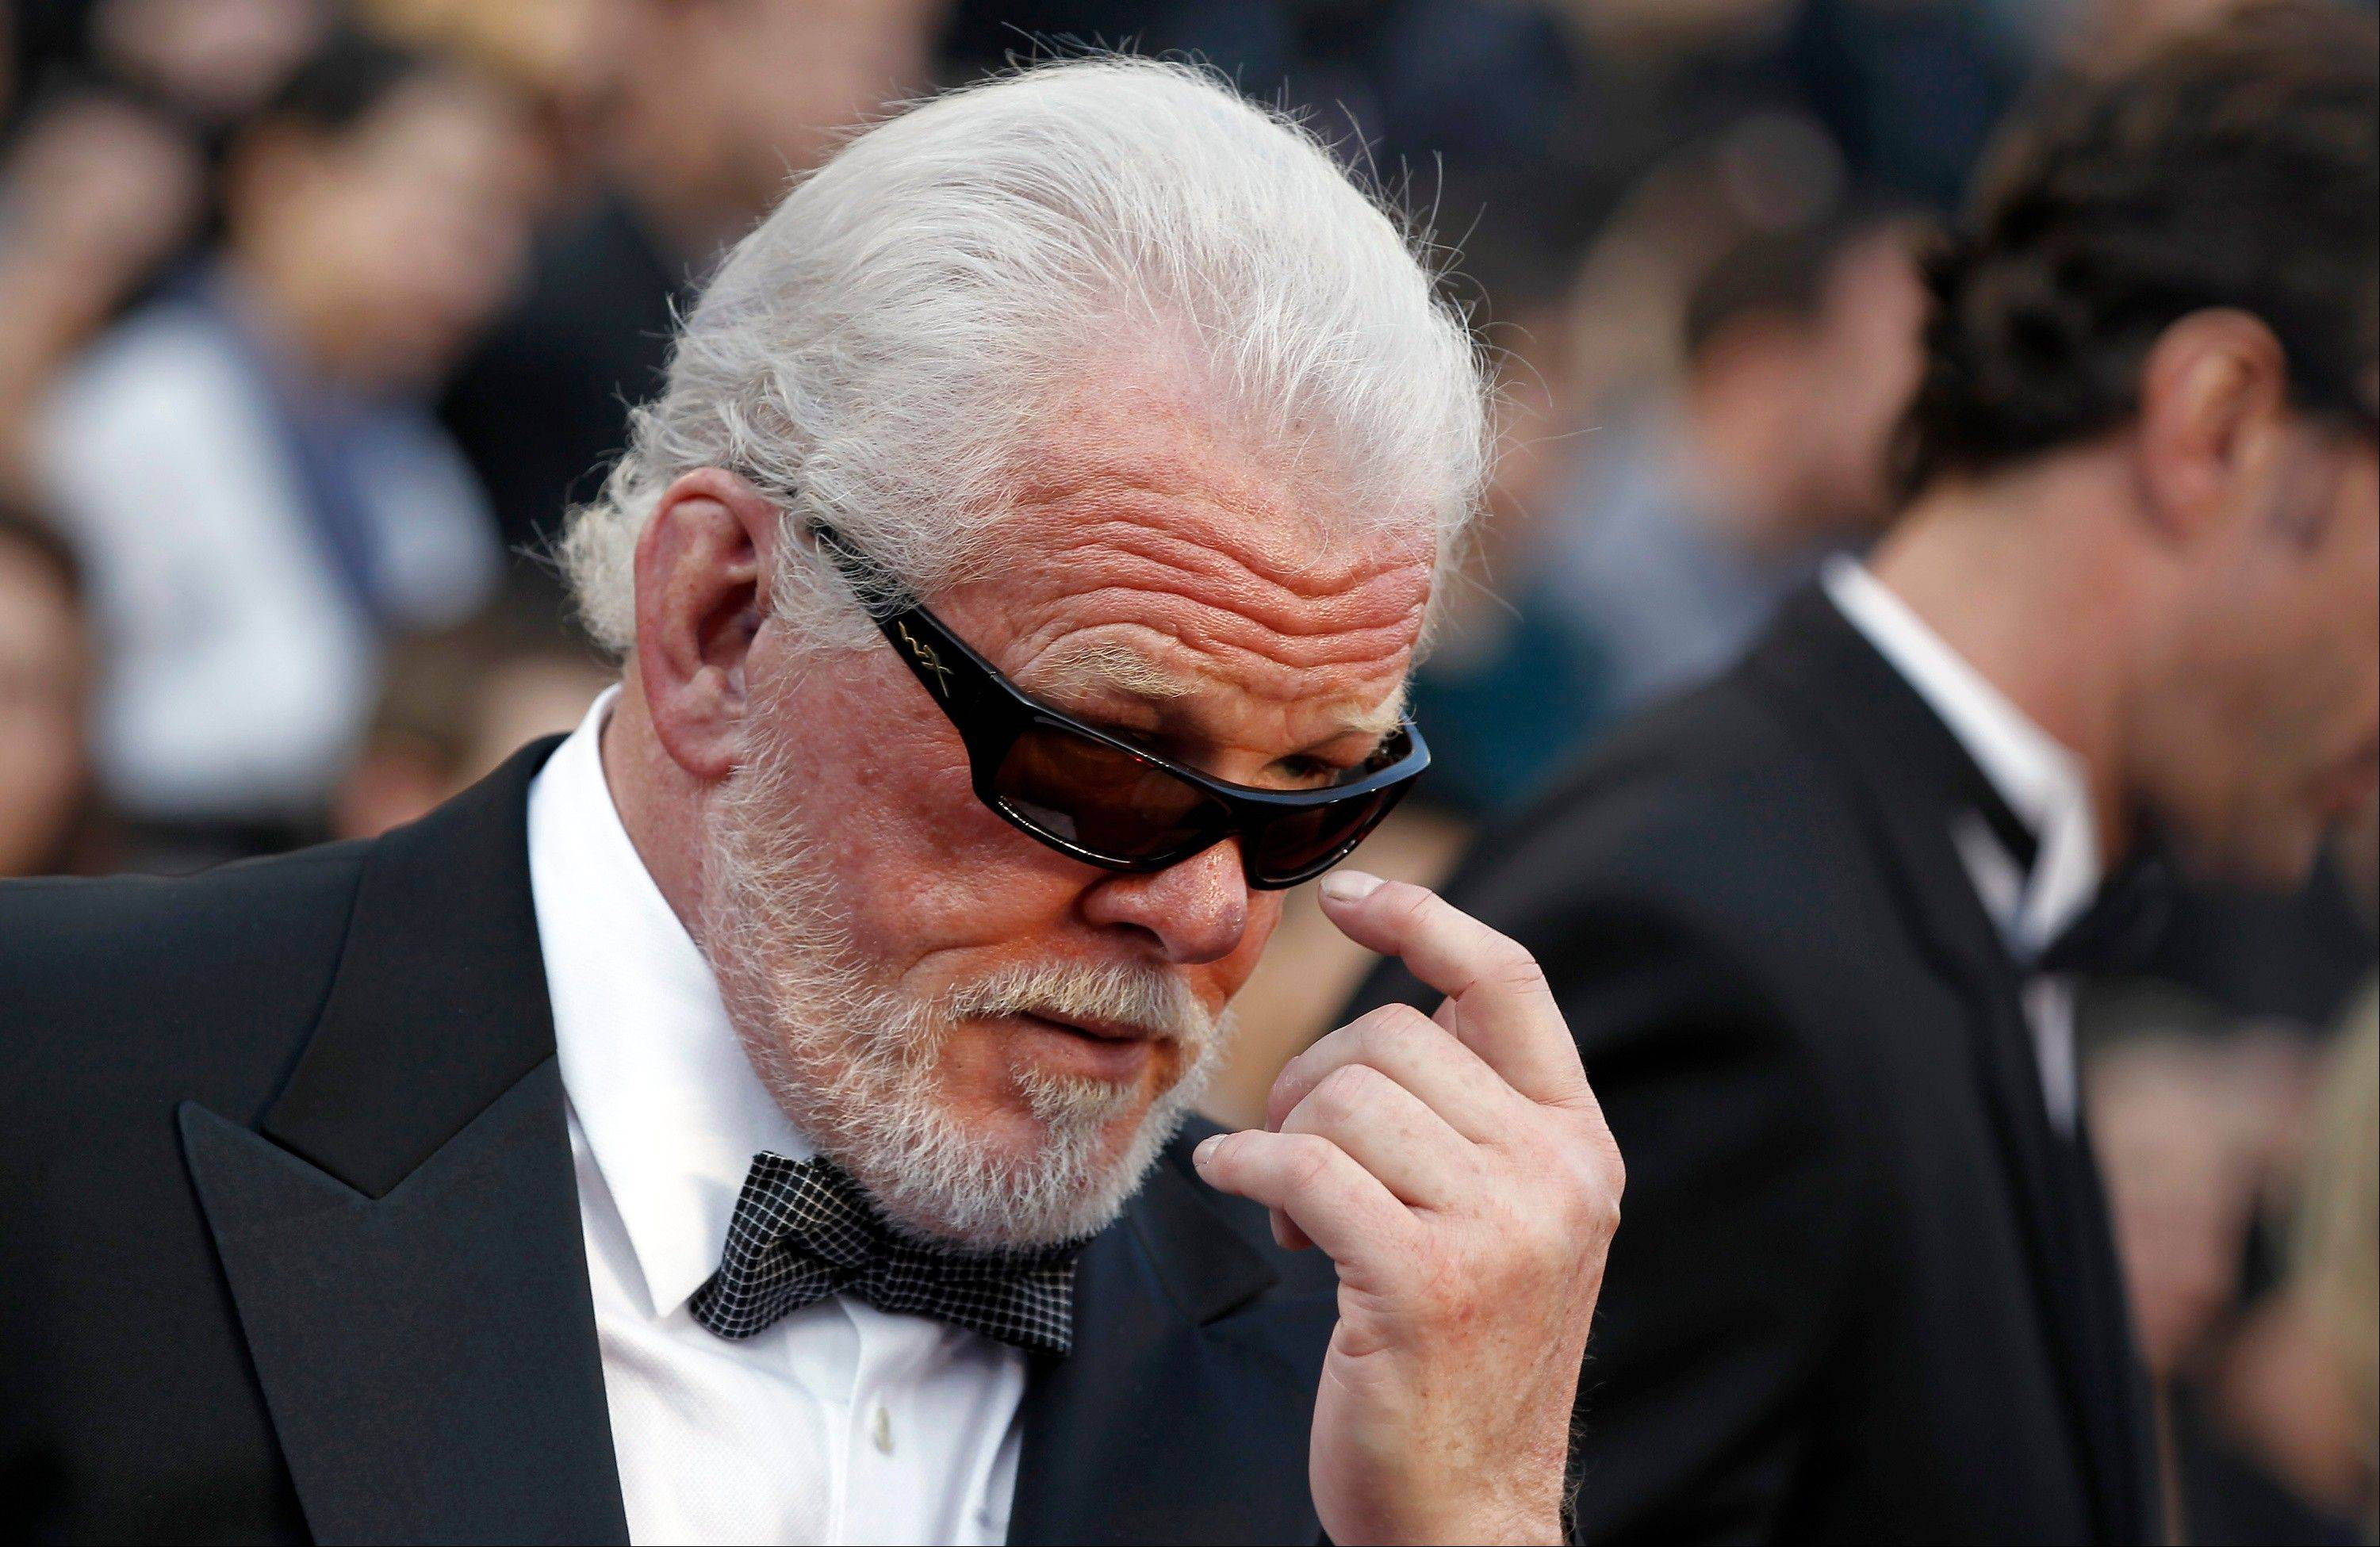 Nick Nolte creates an air of mystery with those shades.